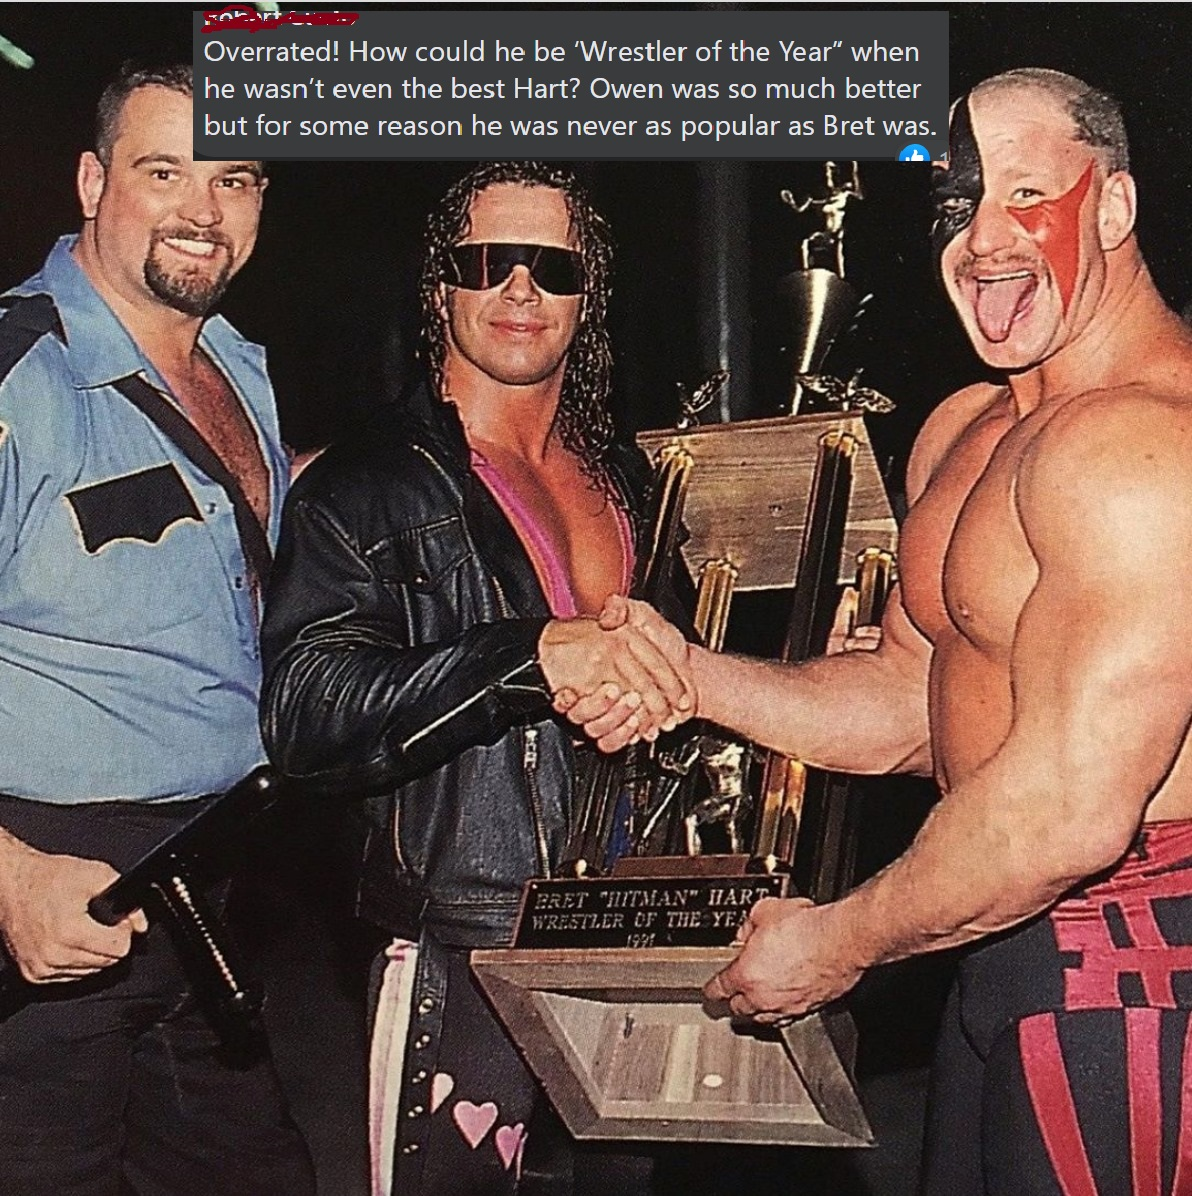 Bret The Hitman Hart is Overrated: A Debate with a Hater